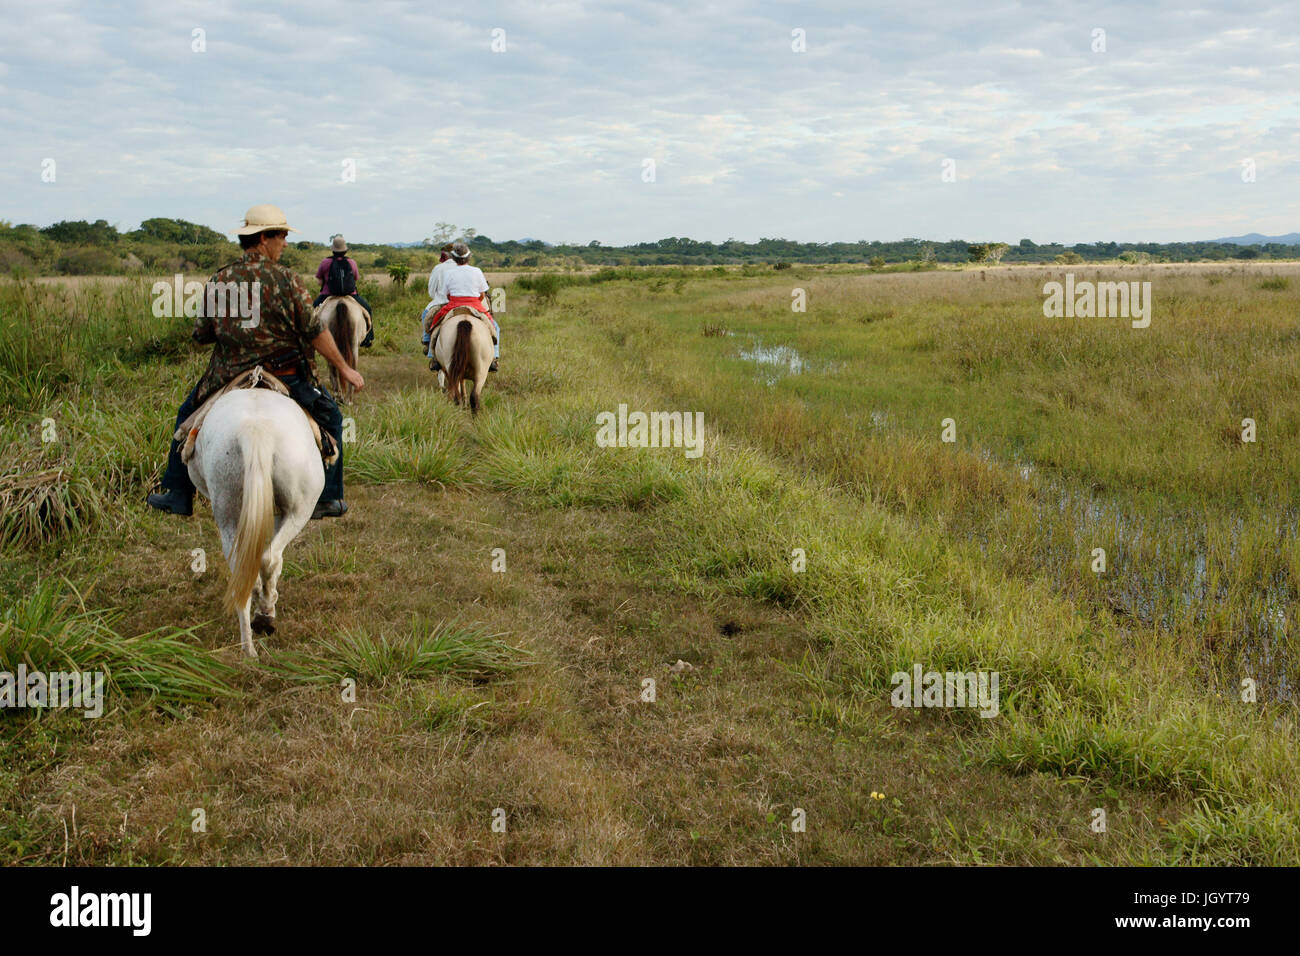 People Riding, Pantanal, Mato Grosso do Sul, Brazil - Stock Image